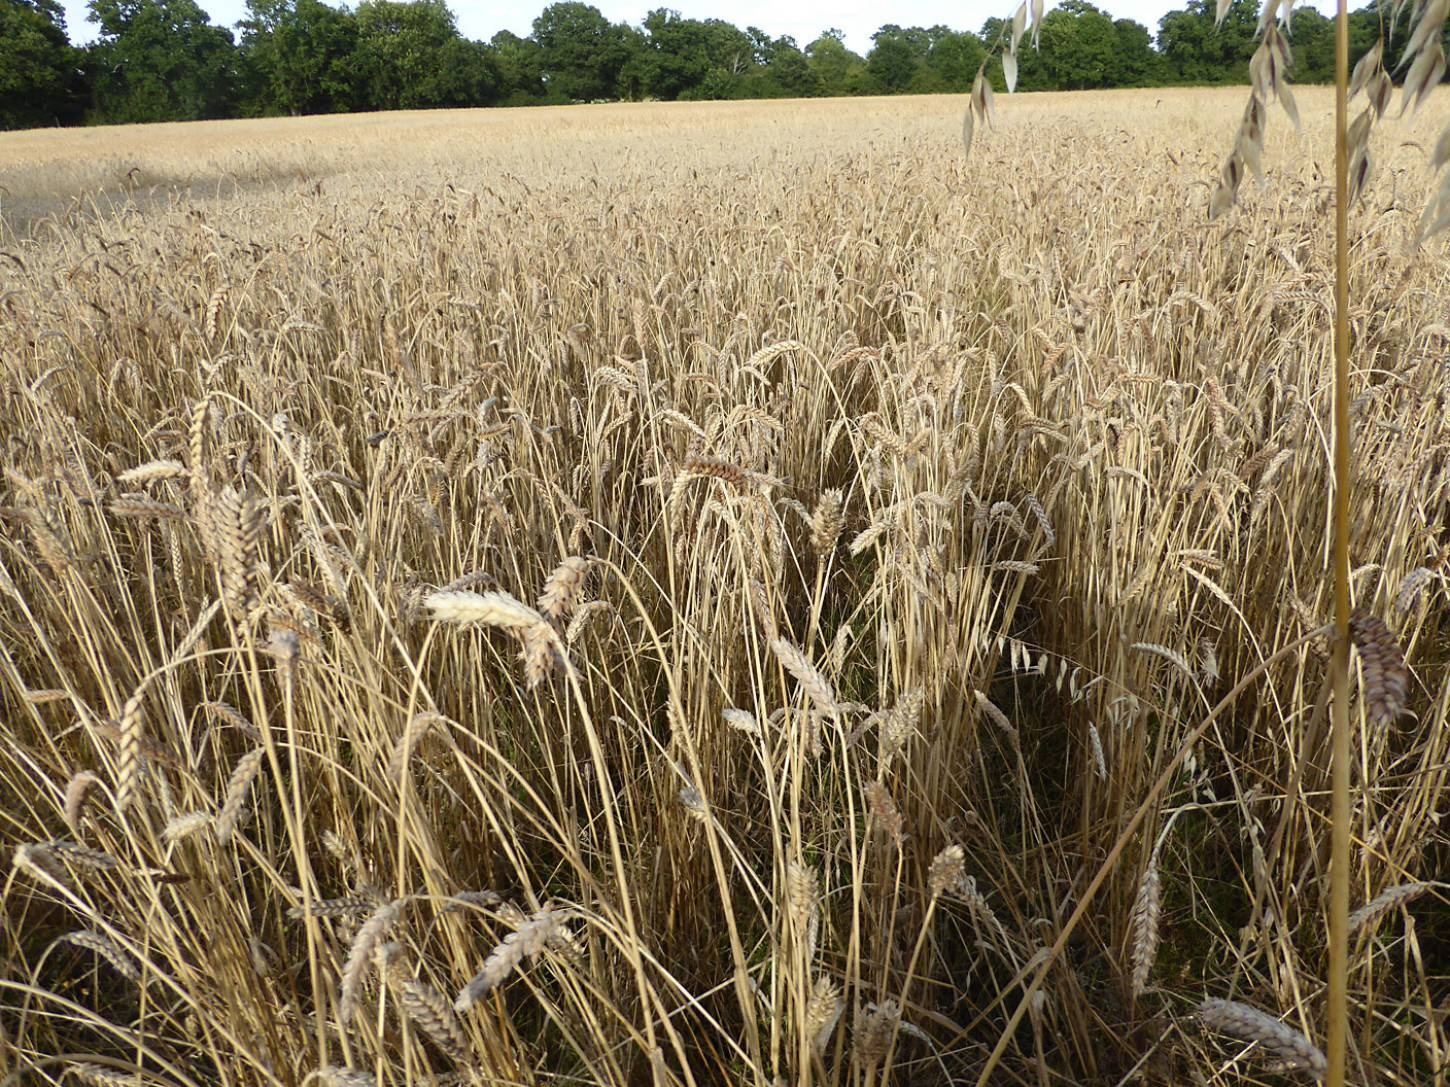 Purple Naked Spelt population, farm review pre-harvest '17 - 6:06pm&nbsp;1<sup>st</sup>&nbsp;Aug.&nbsp;'17  <a href='http://maps.google.com/?t=h&q=51.208475,-0.086797&z=18&output=embed' target=_blank><img src='http://www.brockwell-bake.org.uk/img/marker.png' style='border:none;vertical-align:top' height=16px></a>